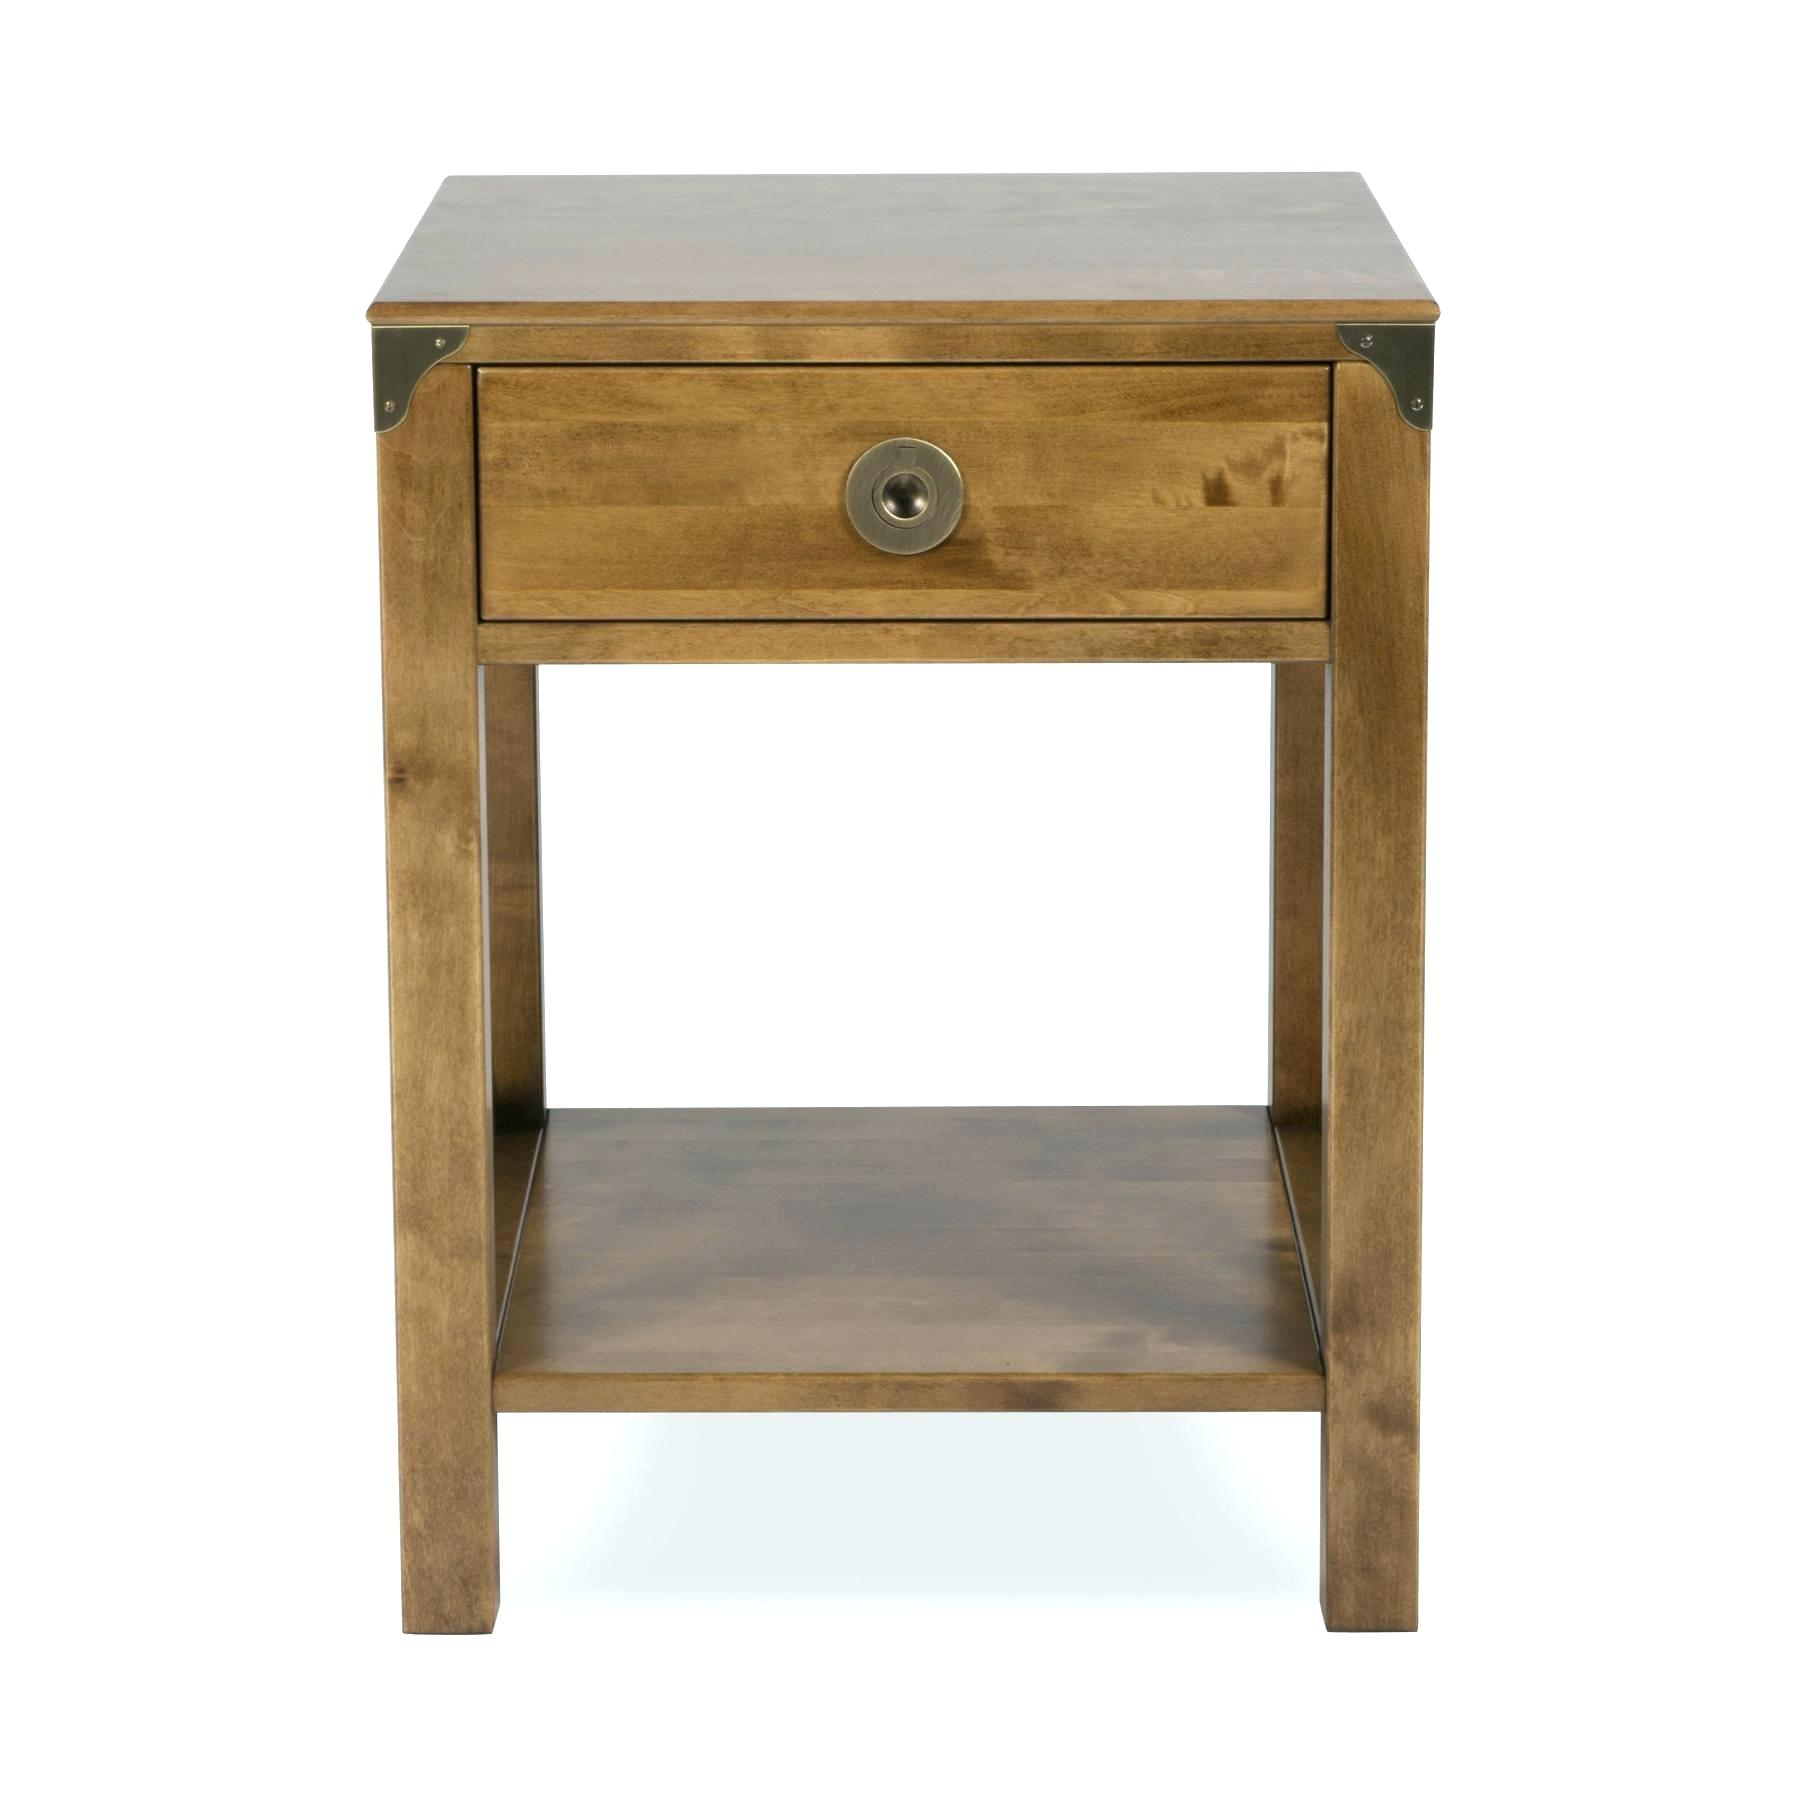 target small round coffee table wood side marble and sofa furniture metal outdoor bedside tables wicker accent full size patio buffet grey nightstand gray living room pier one